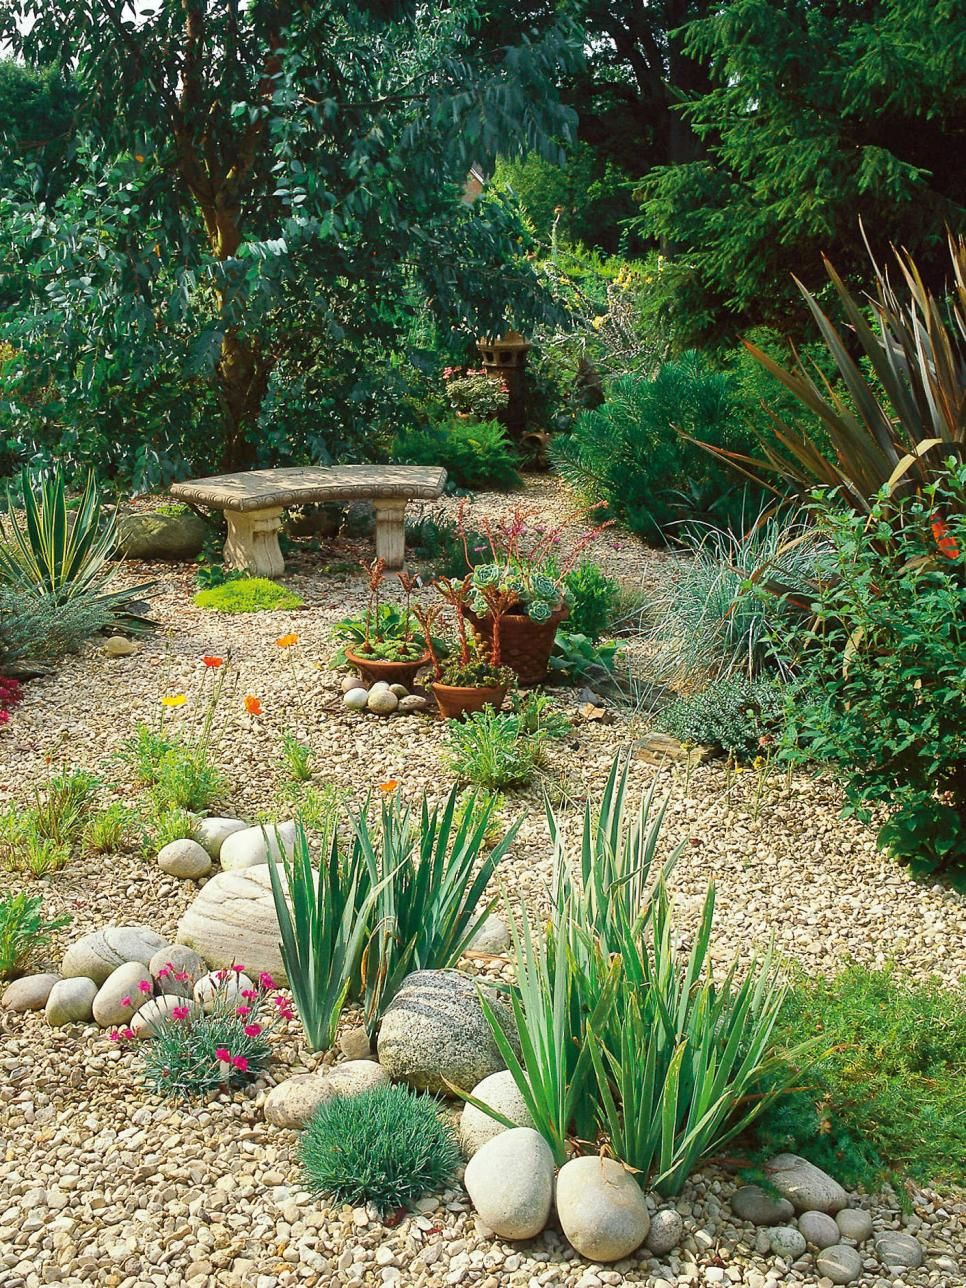 Landscaping With Gravel And Other Soft Surfacing Gravel Landscaping Rock Garden Landscaping River Rock Landscaping